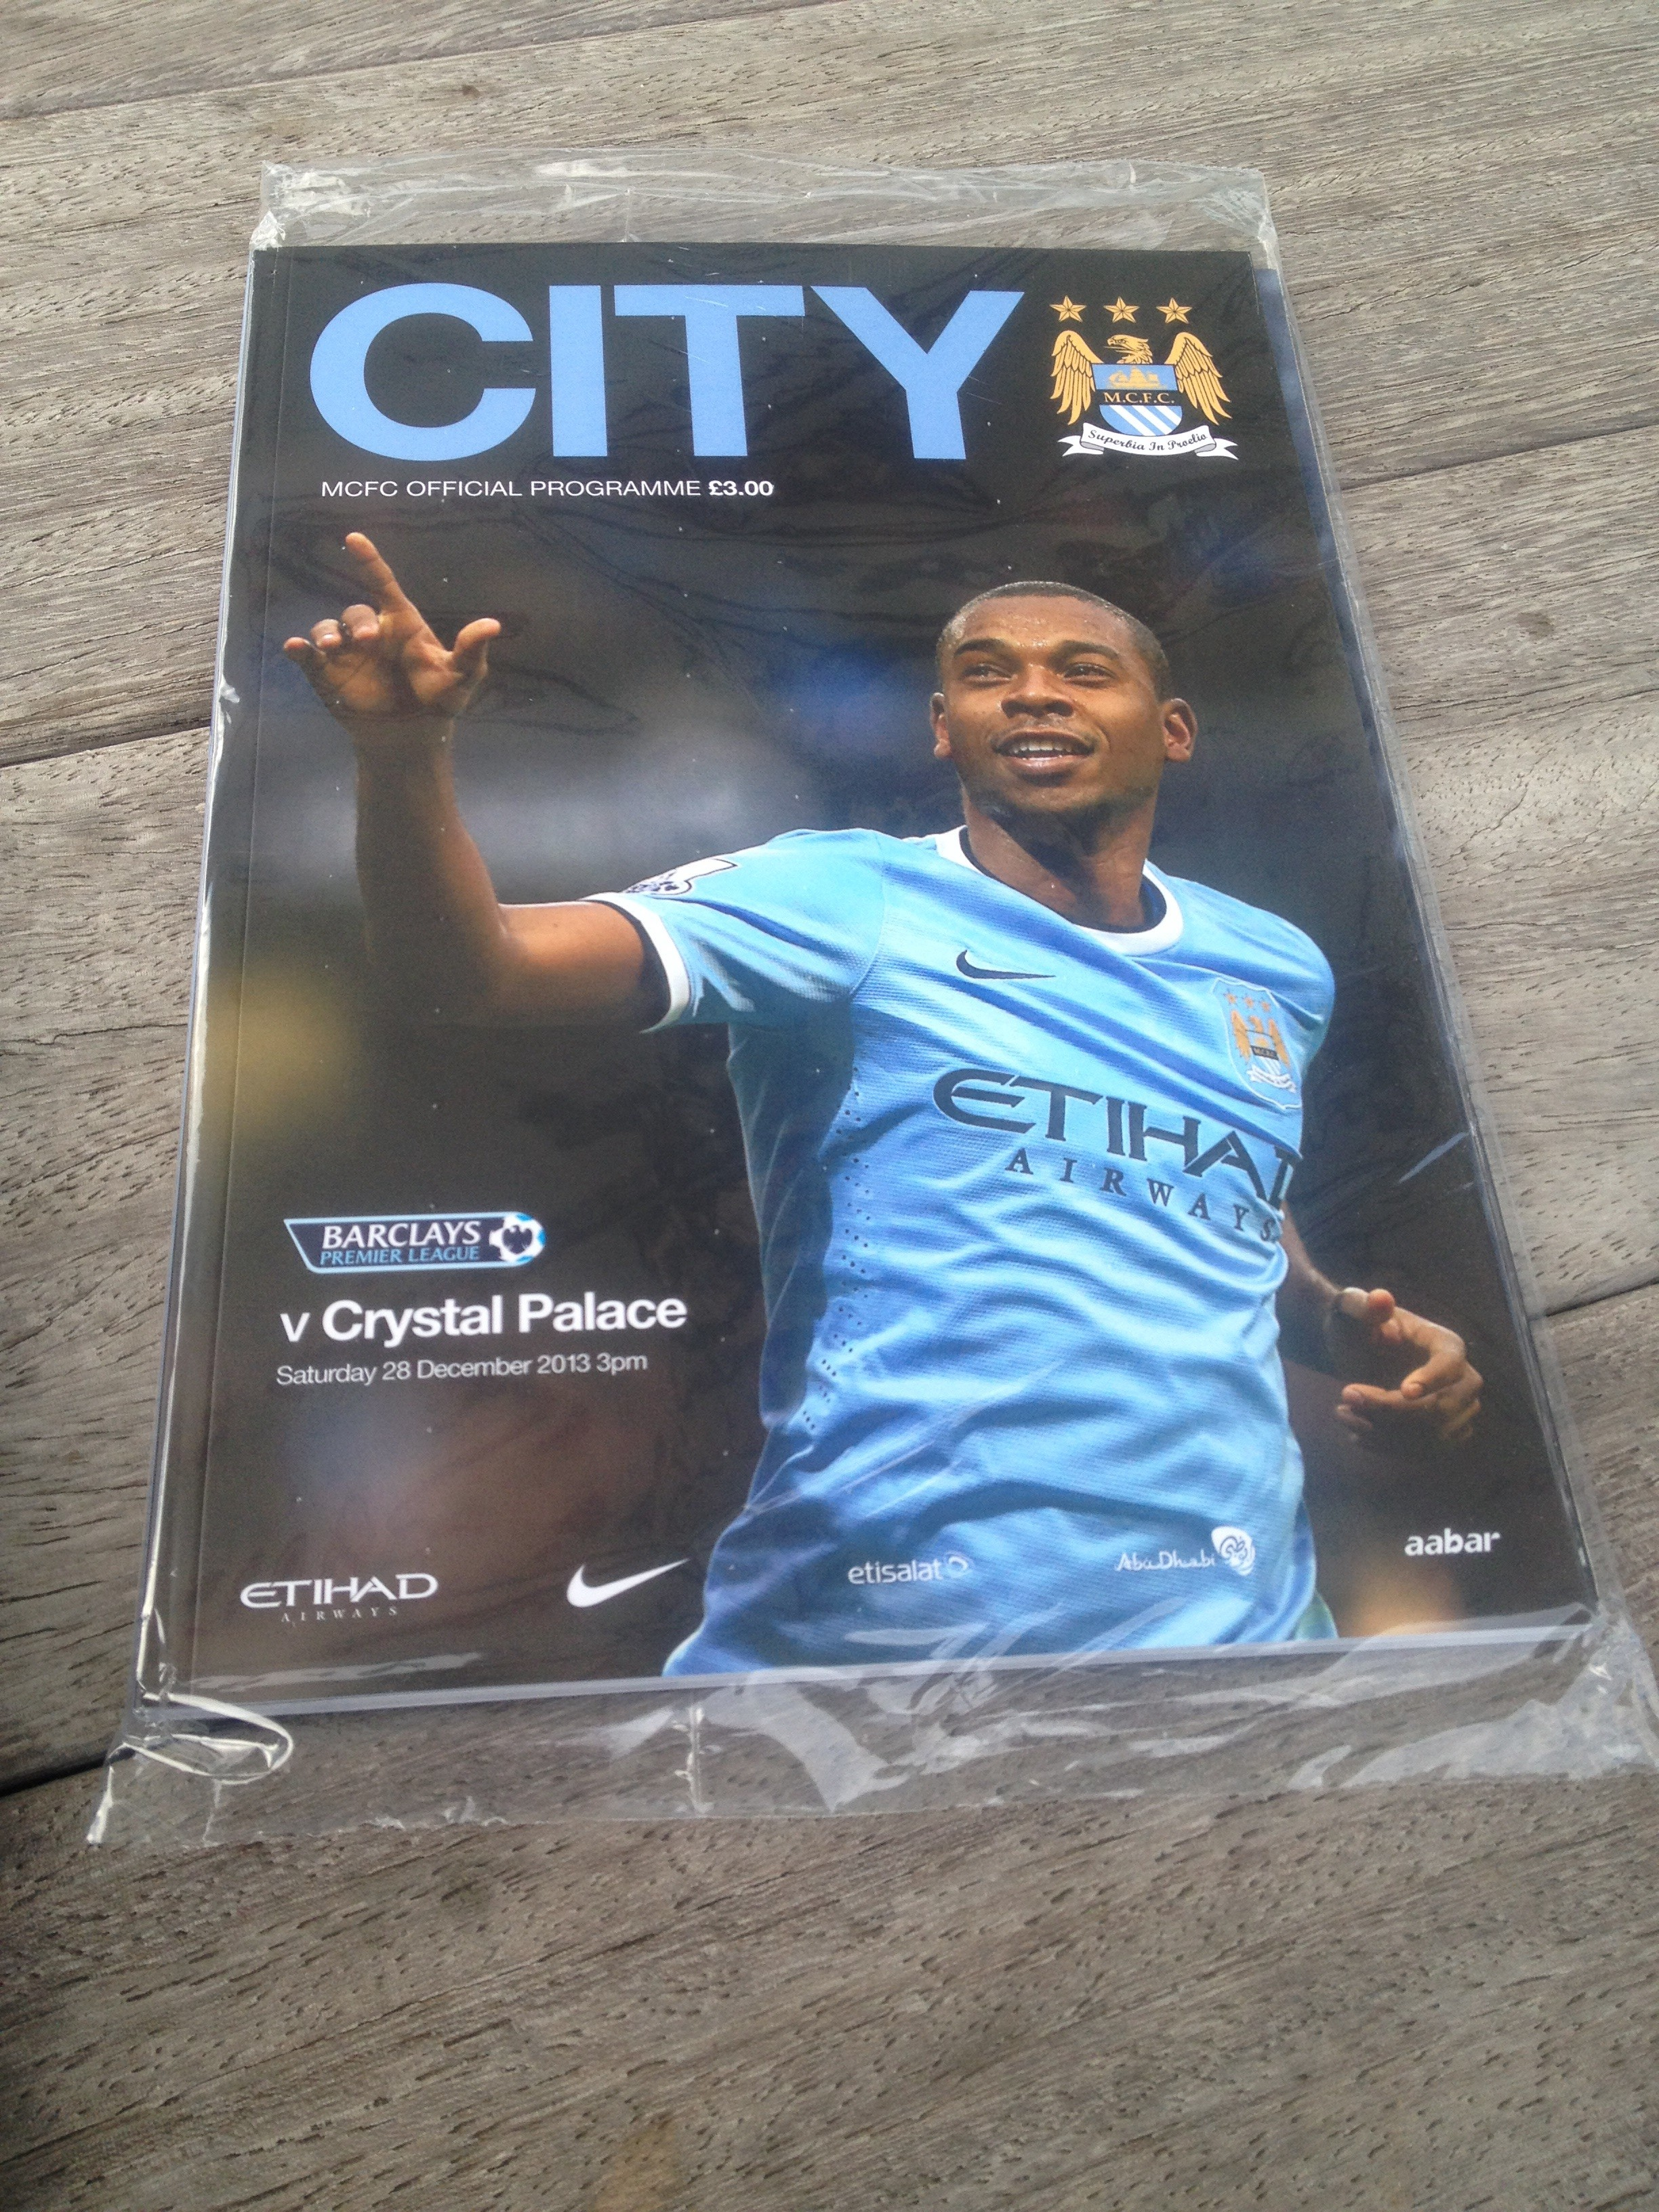 City Vs Palace program